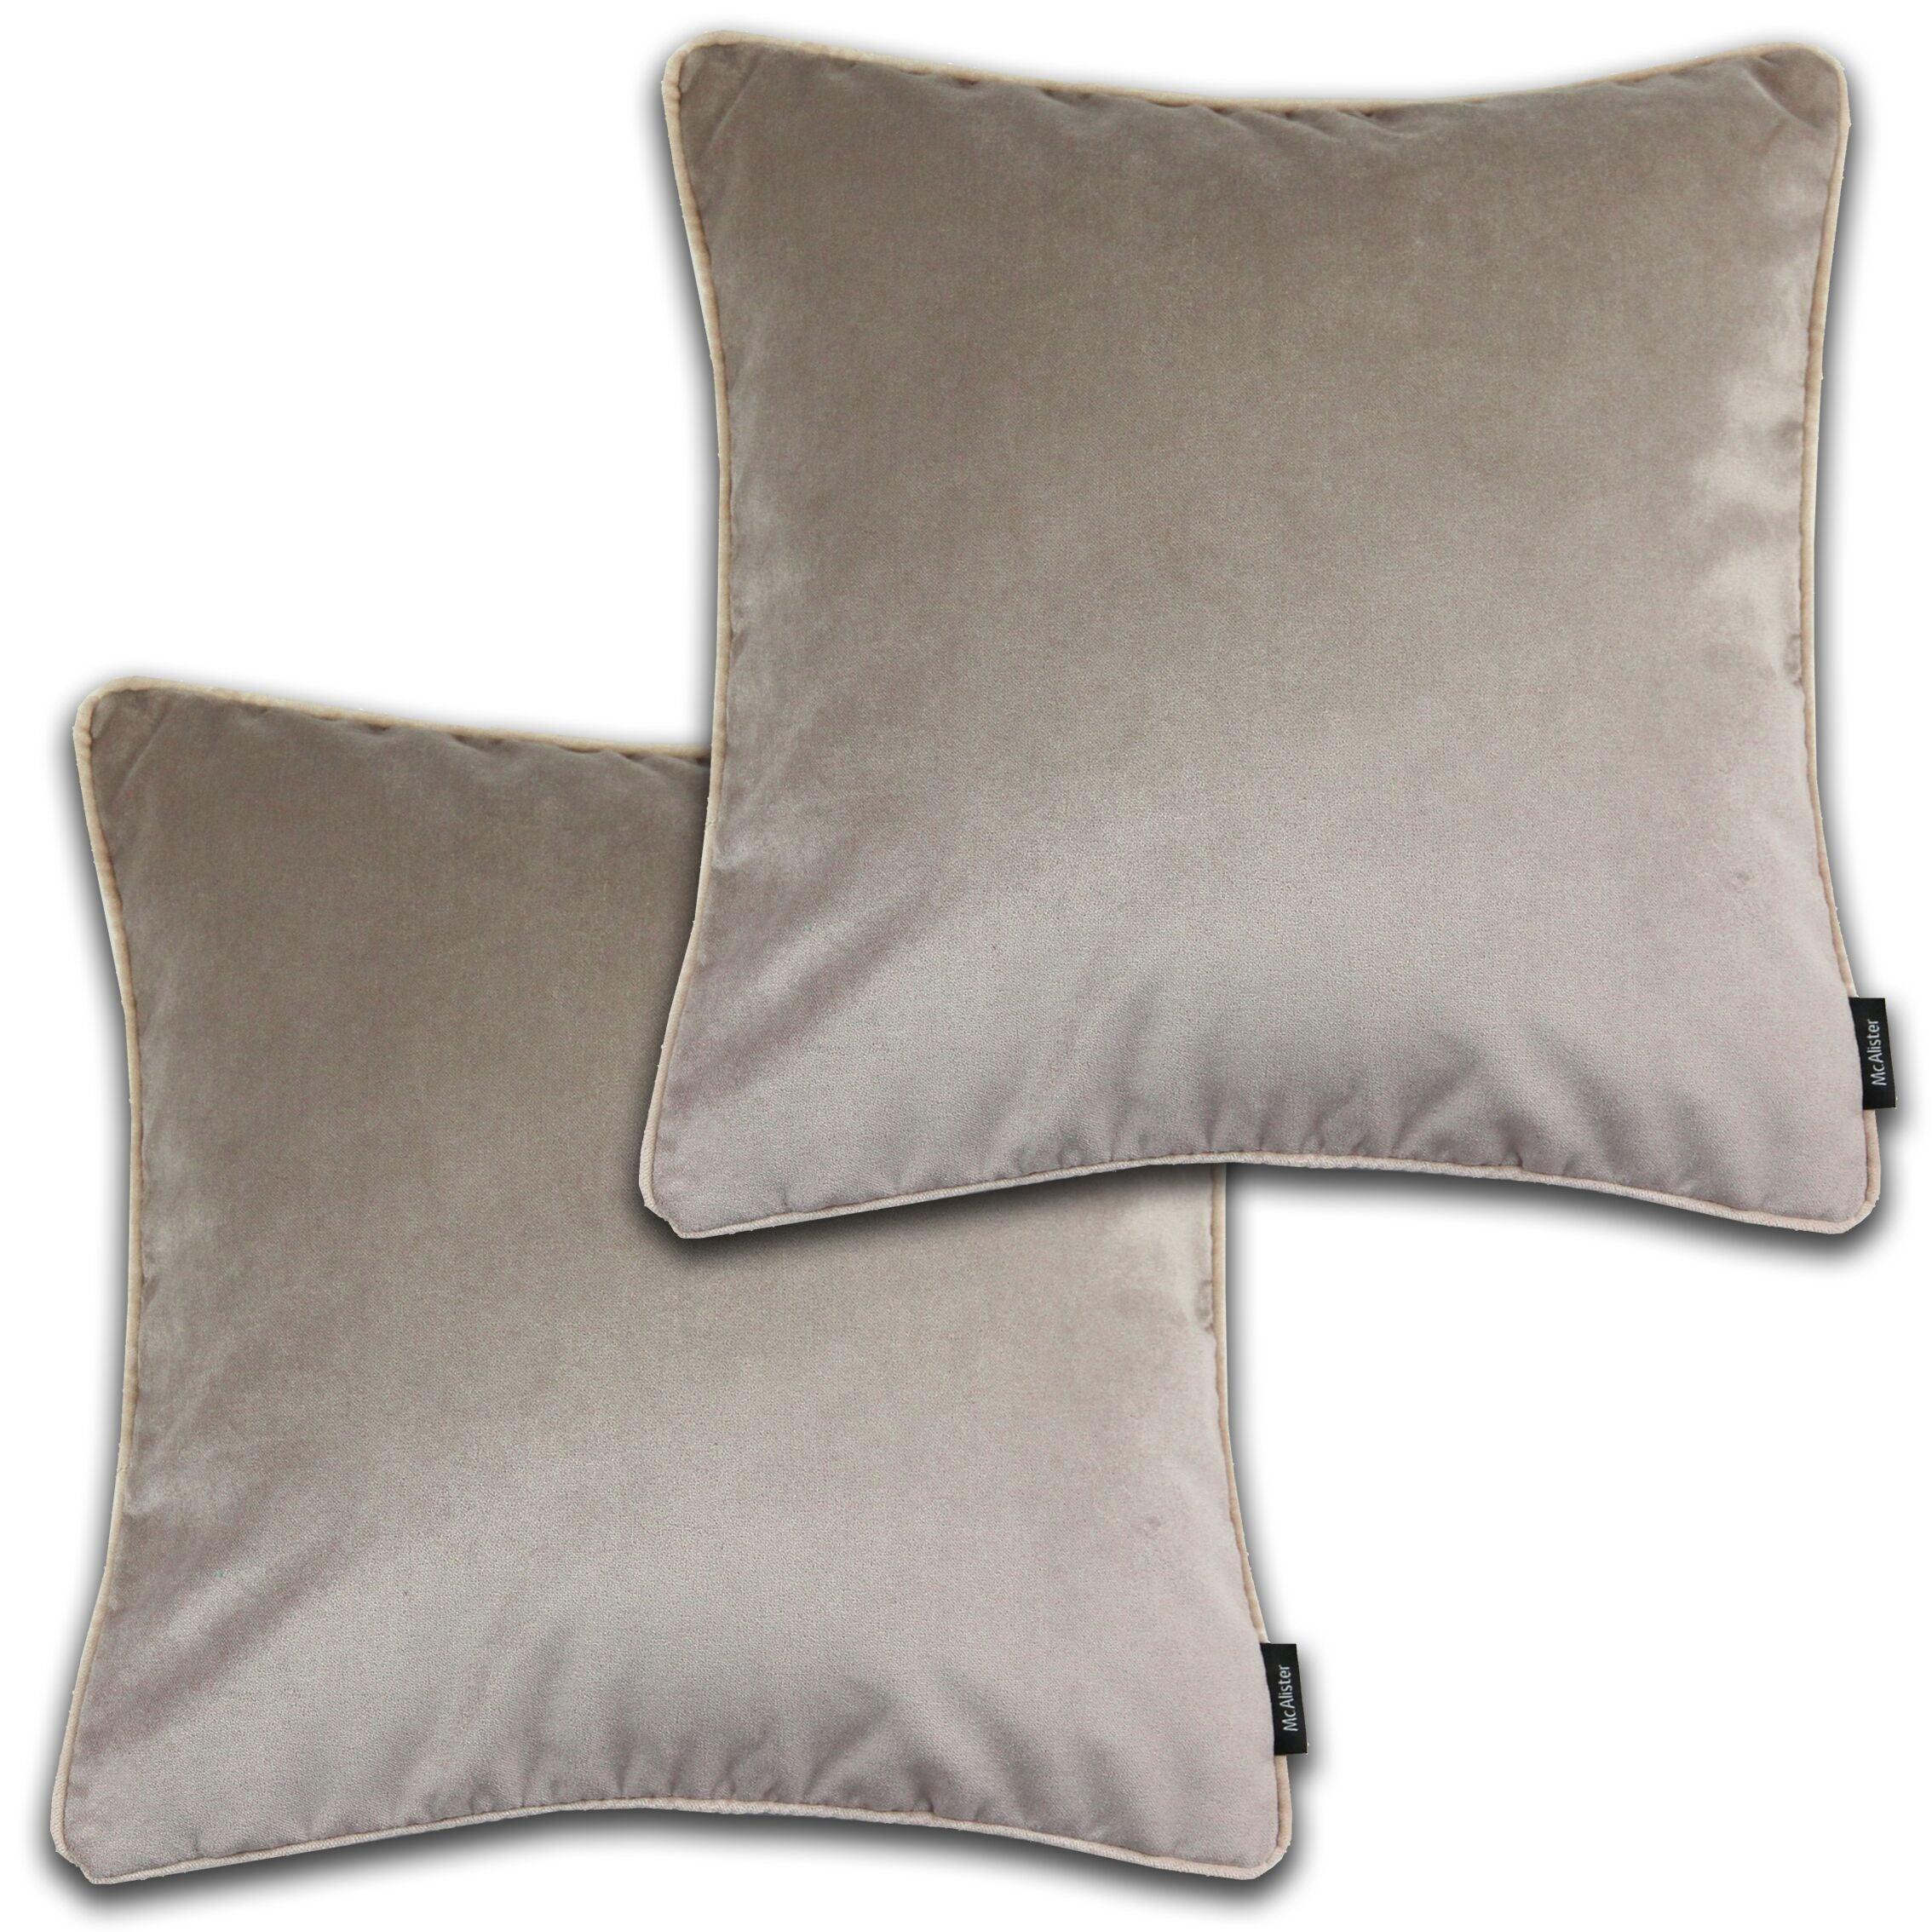 McAlister Textiles Matt Beige Mink Velvet 43cm x 43cm Cushion Sets Cushions and Covers Cushion Covers Set of 2